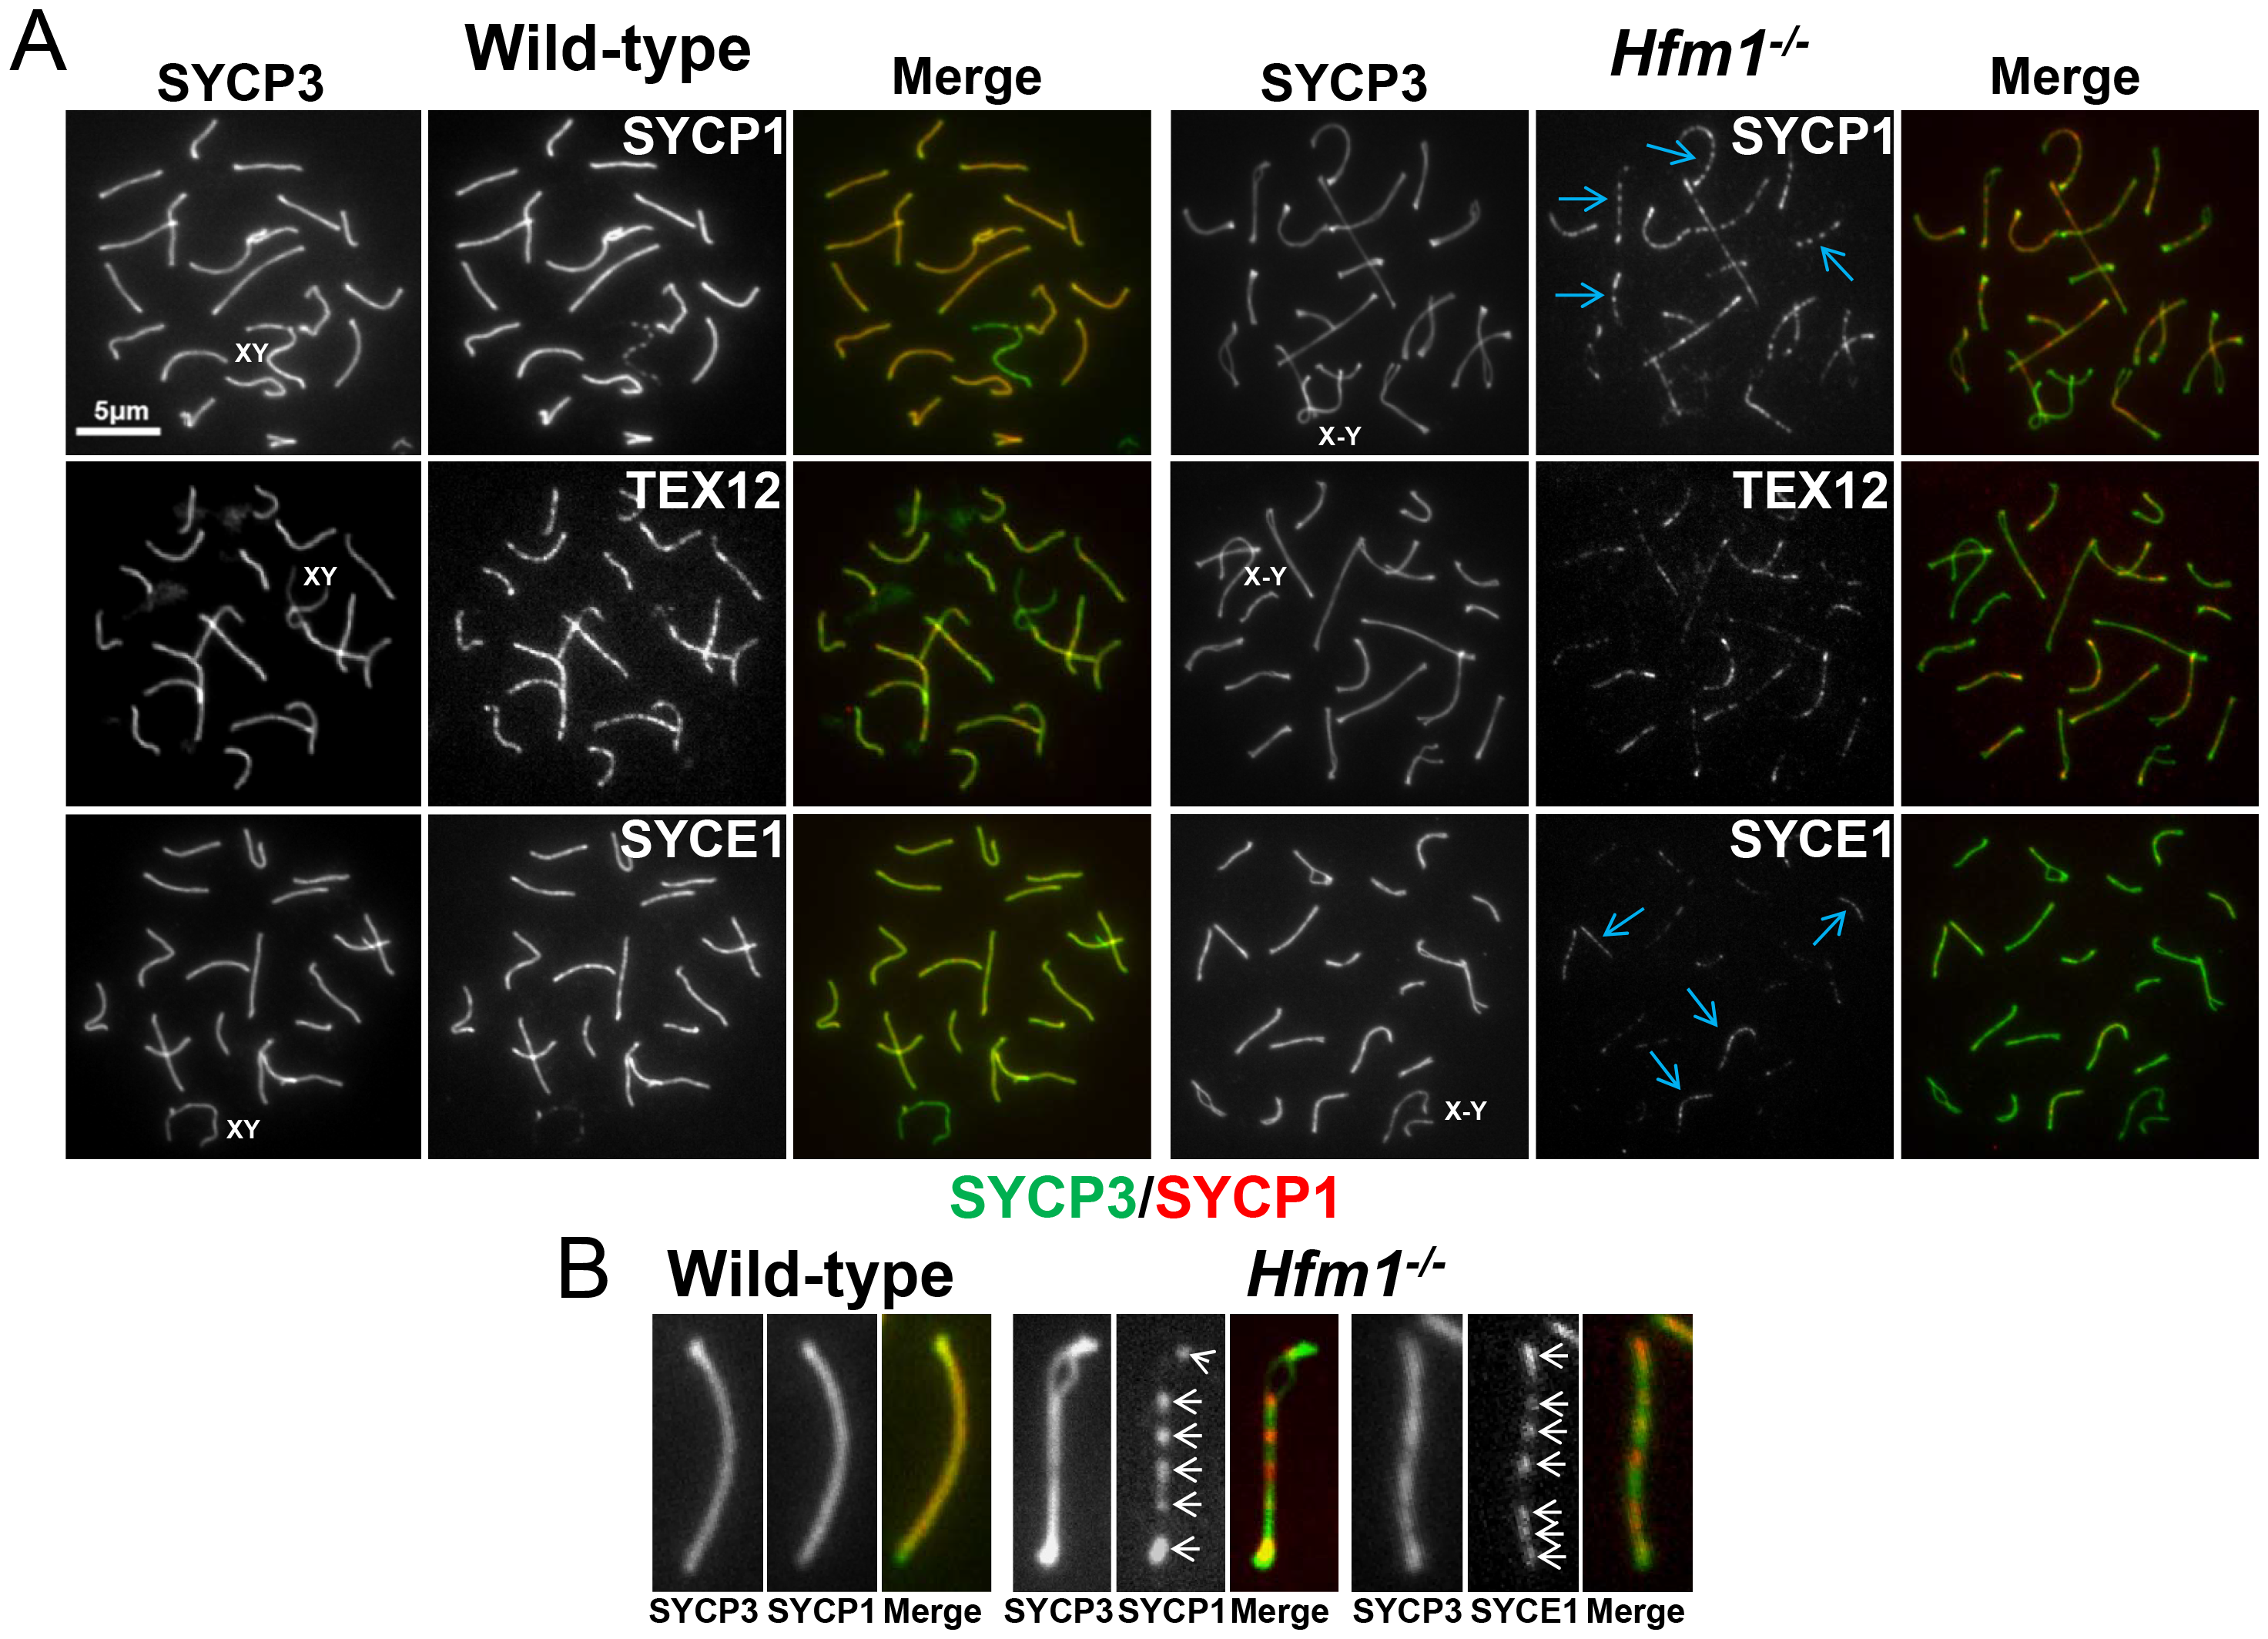 Synaptic defects in <i>Hfm1<sup>−/−</sup></i> spermatocytes.